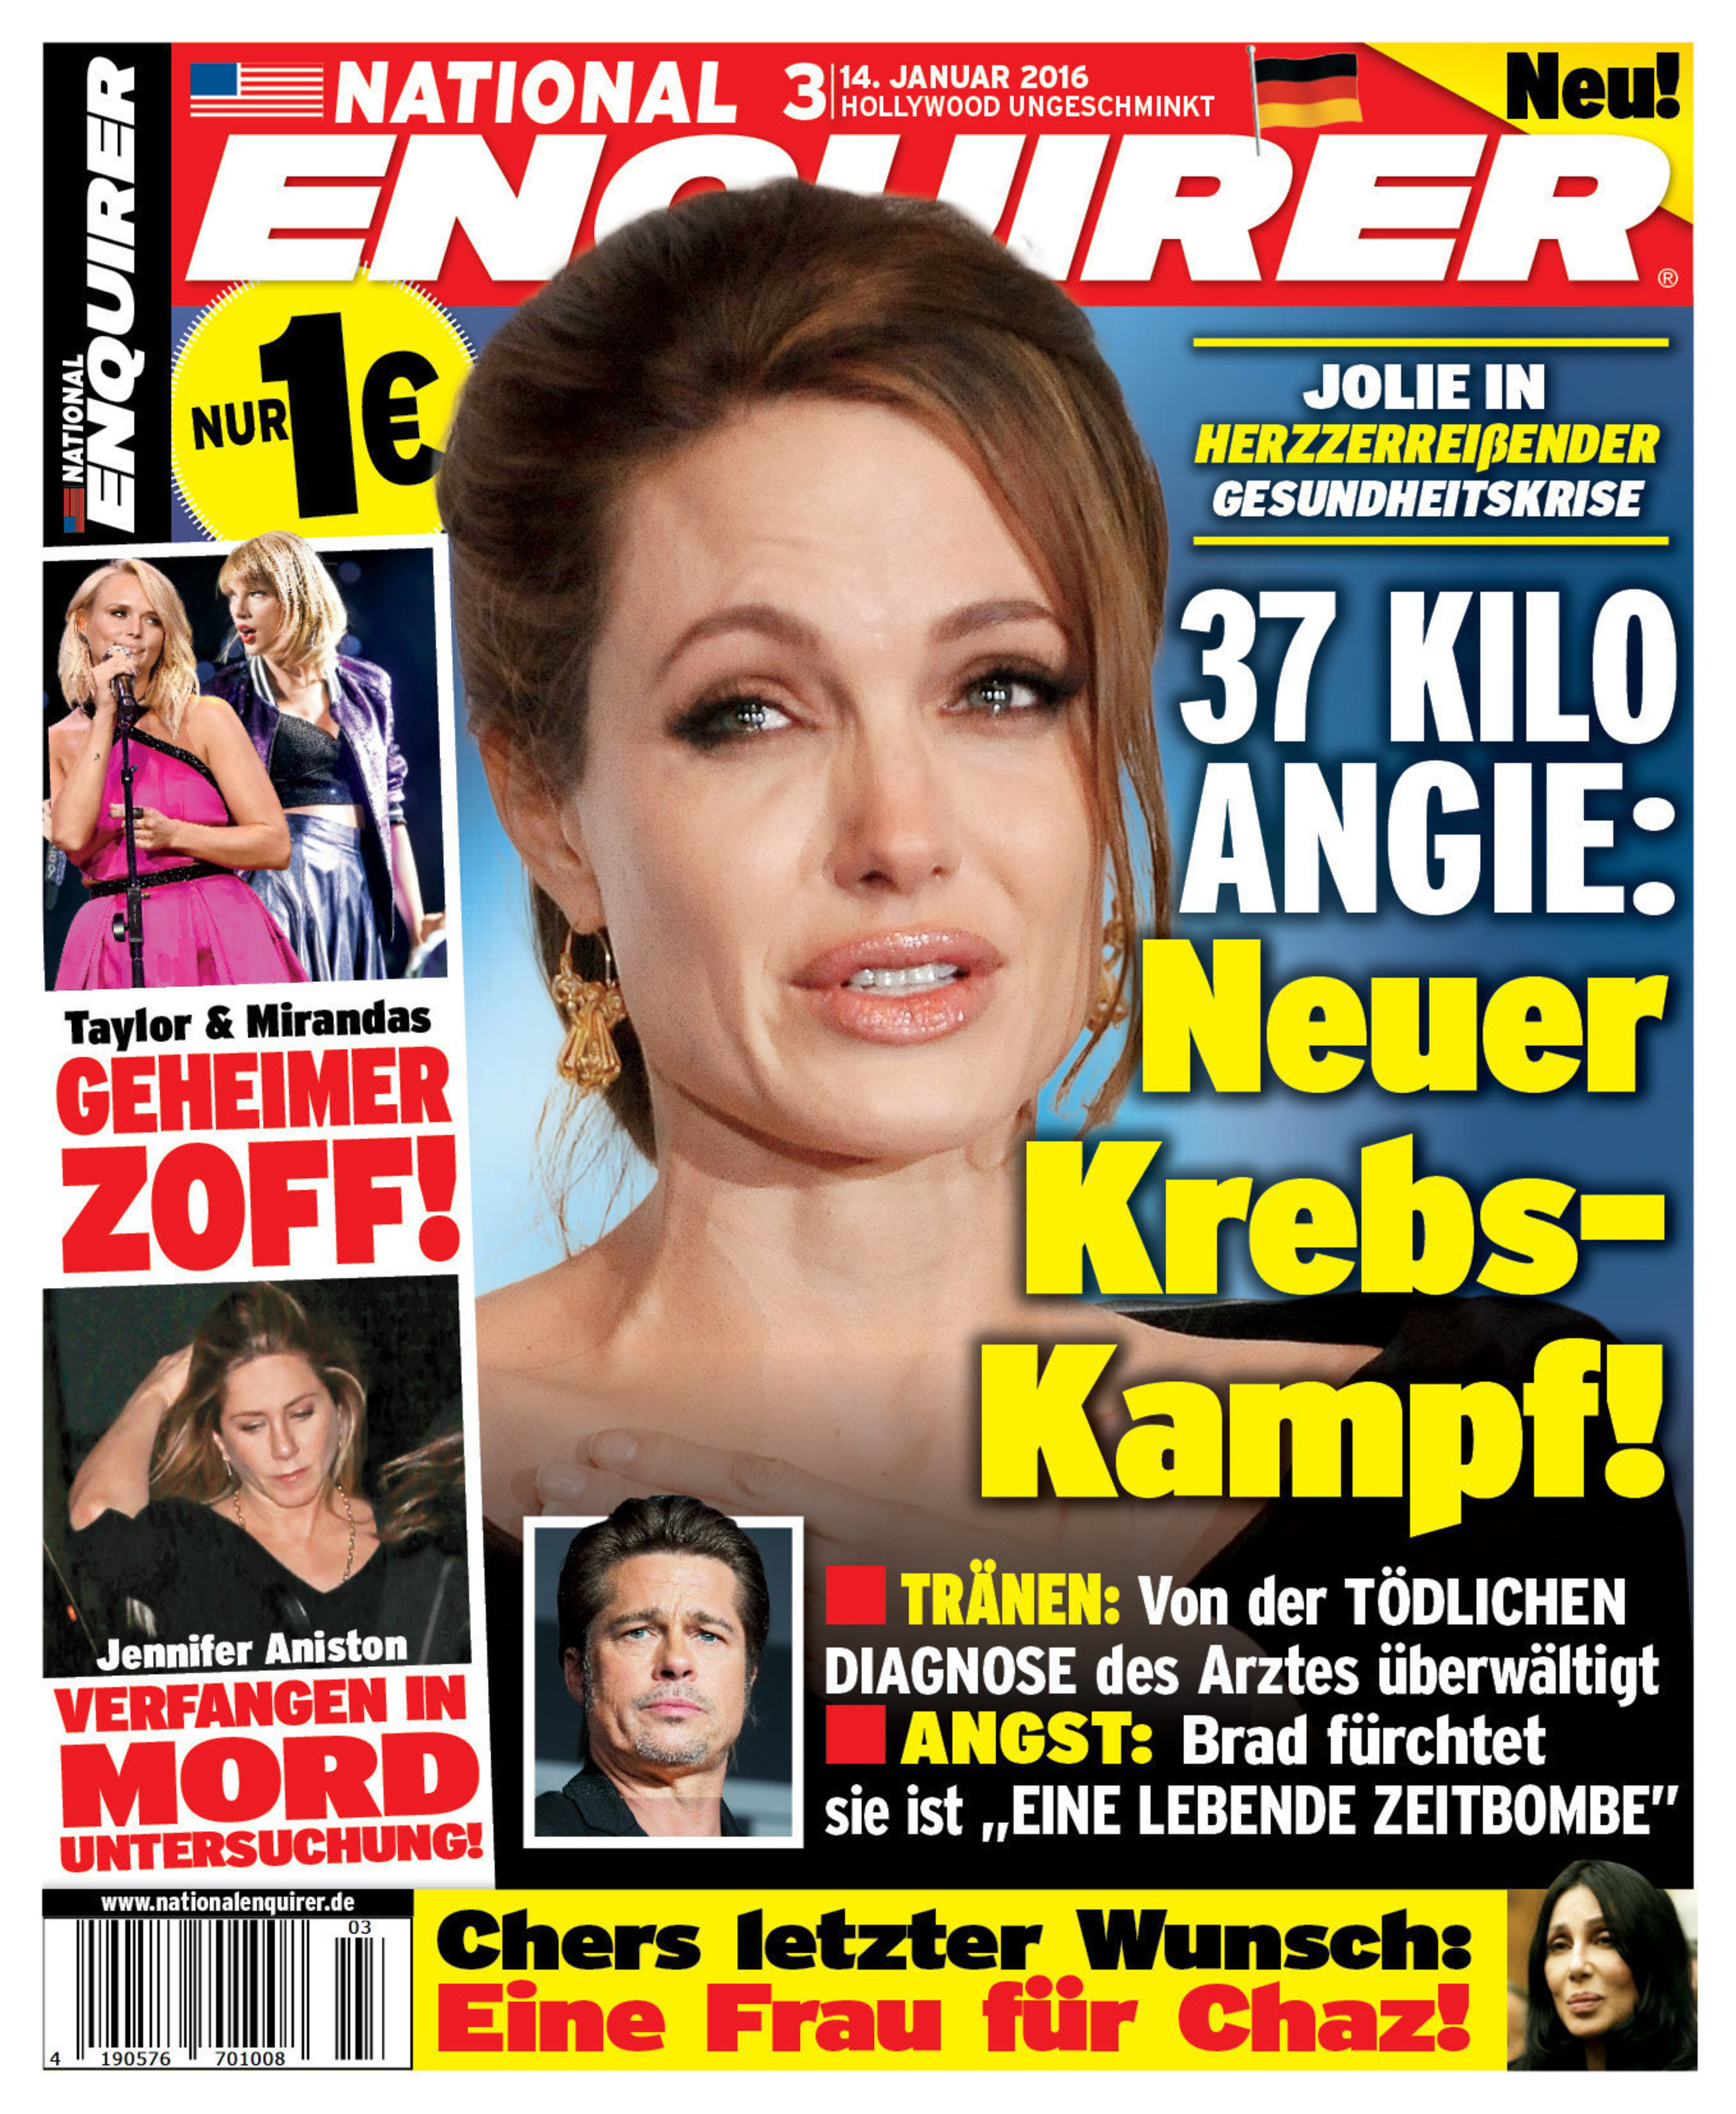 American Media, Inc. Launches The National Enquirer In Germany